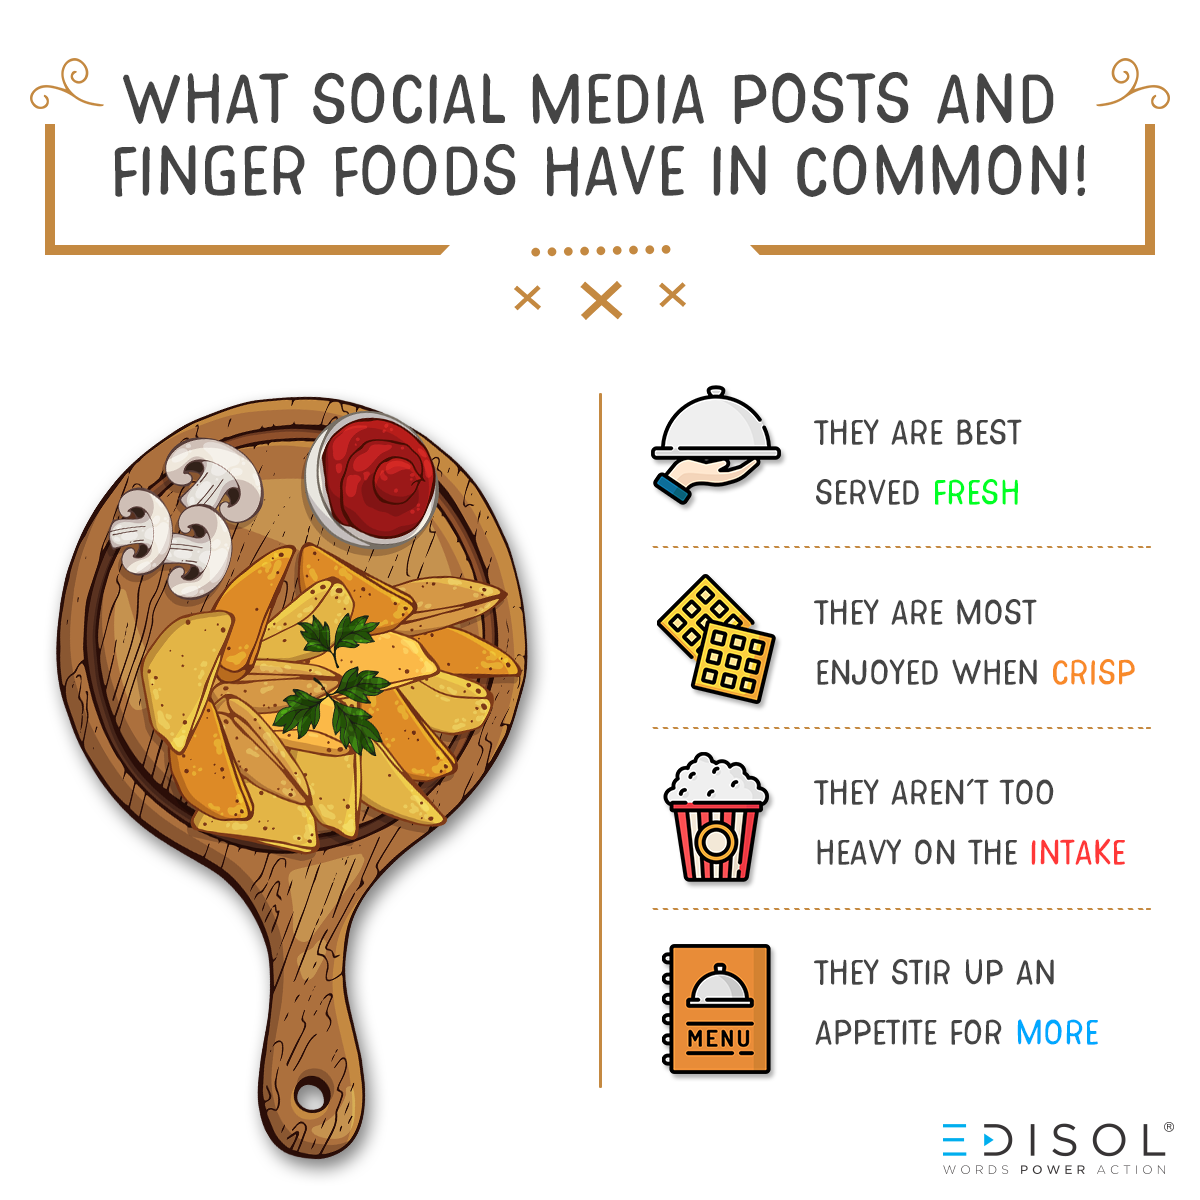 Edisol_Part1_IG_What social media posts and finger foods have in common!_v6.png